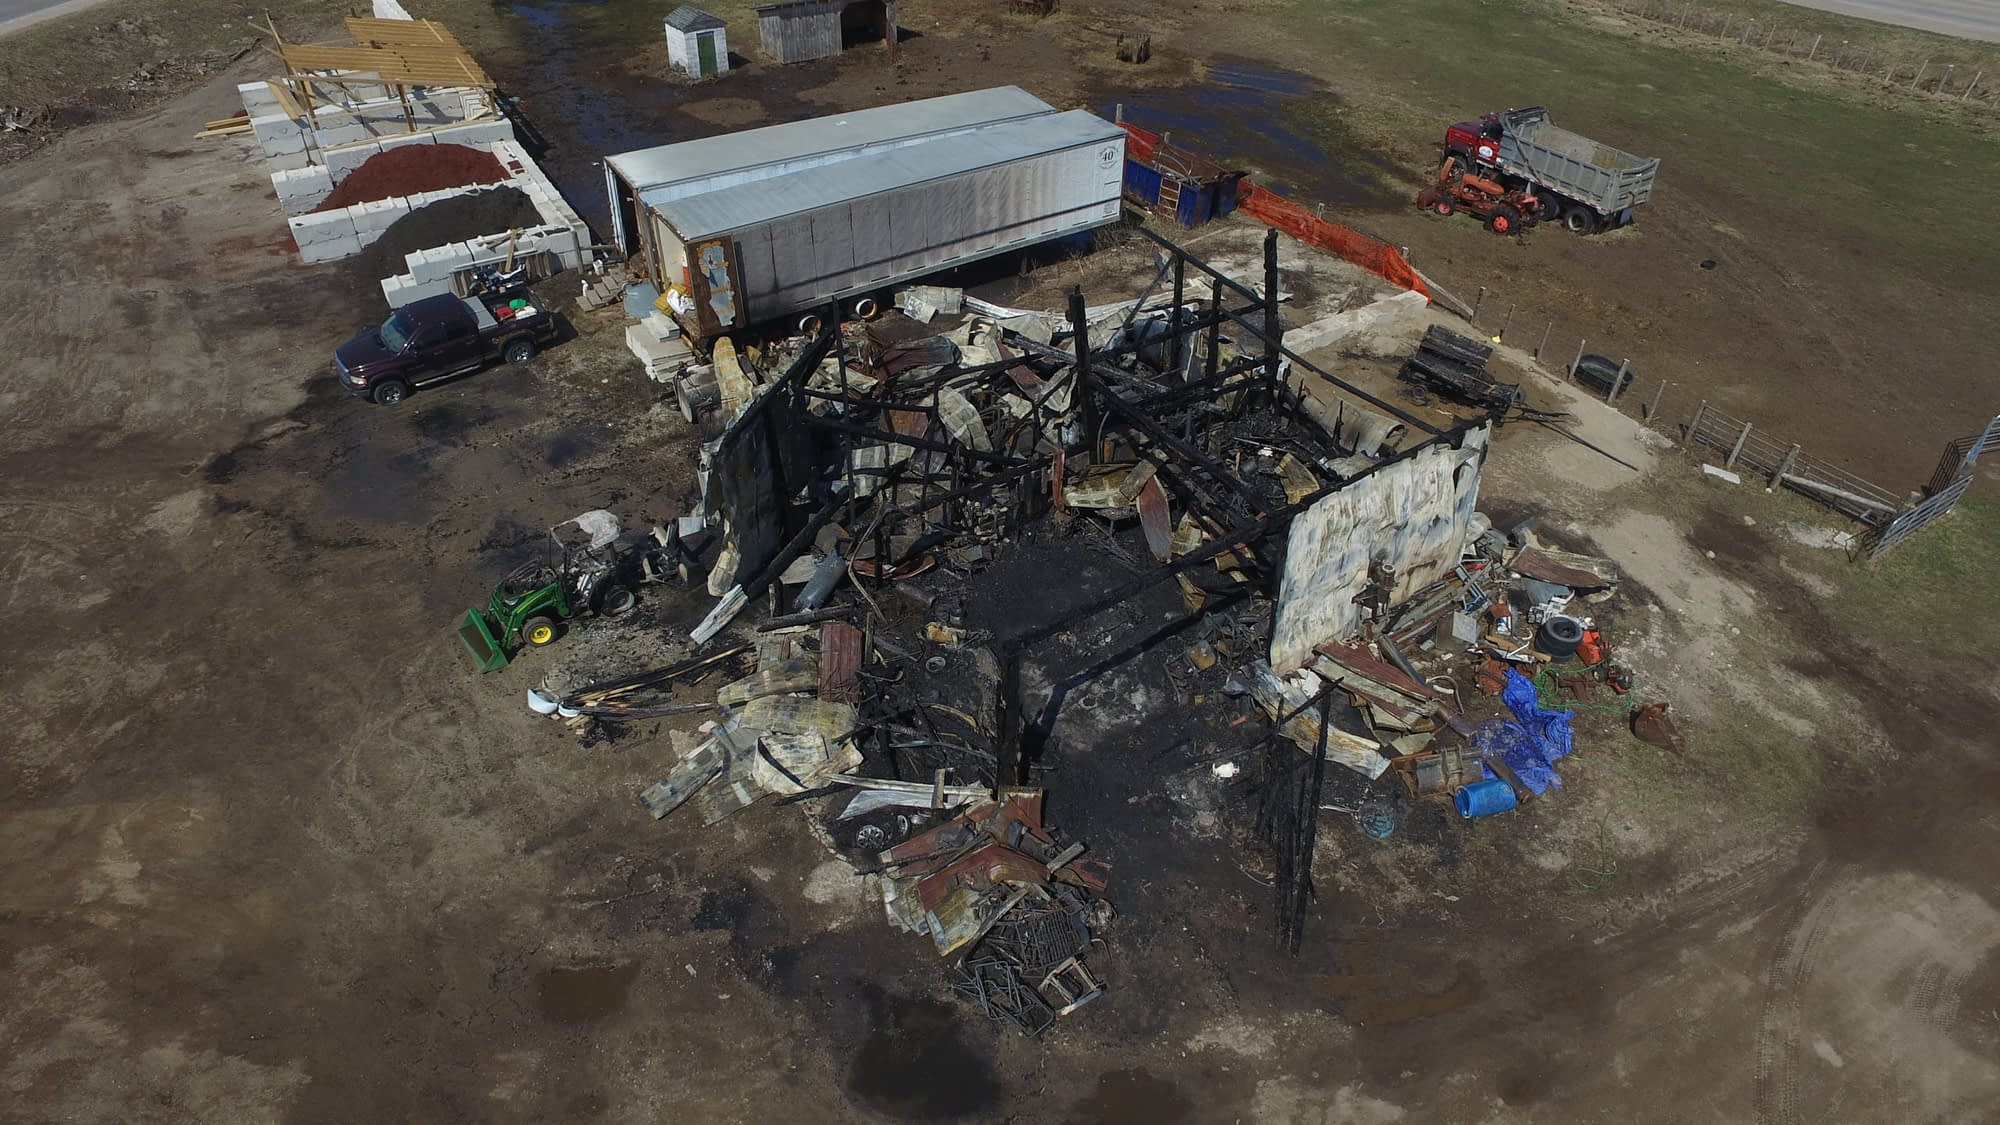 Arson investigation underway following second fire on rural property